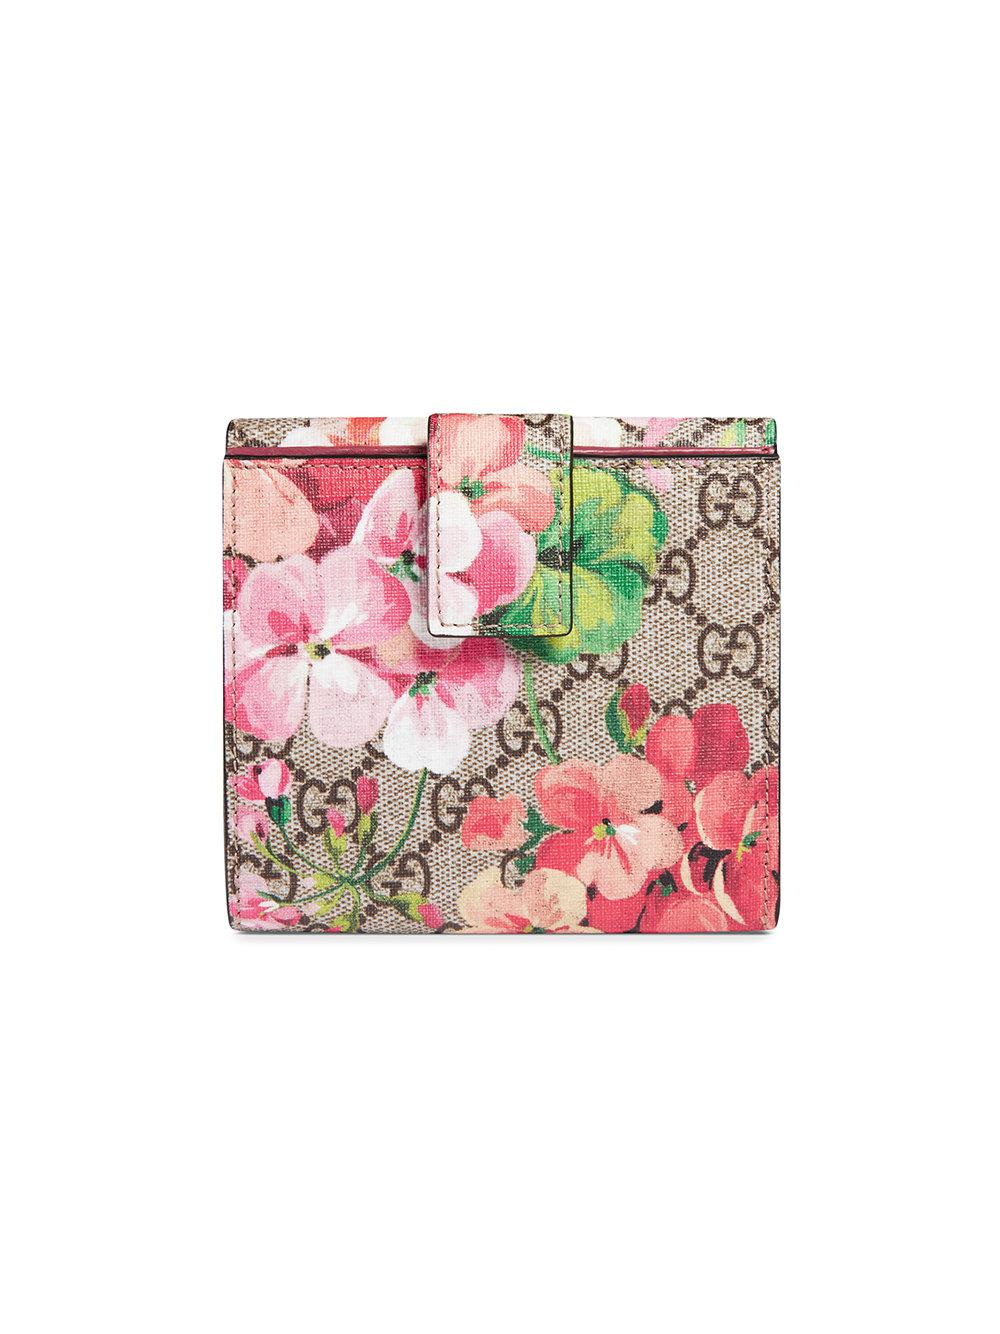 GG Blooms french flap wallet - Multicolour Gucci EPxieHT8tF